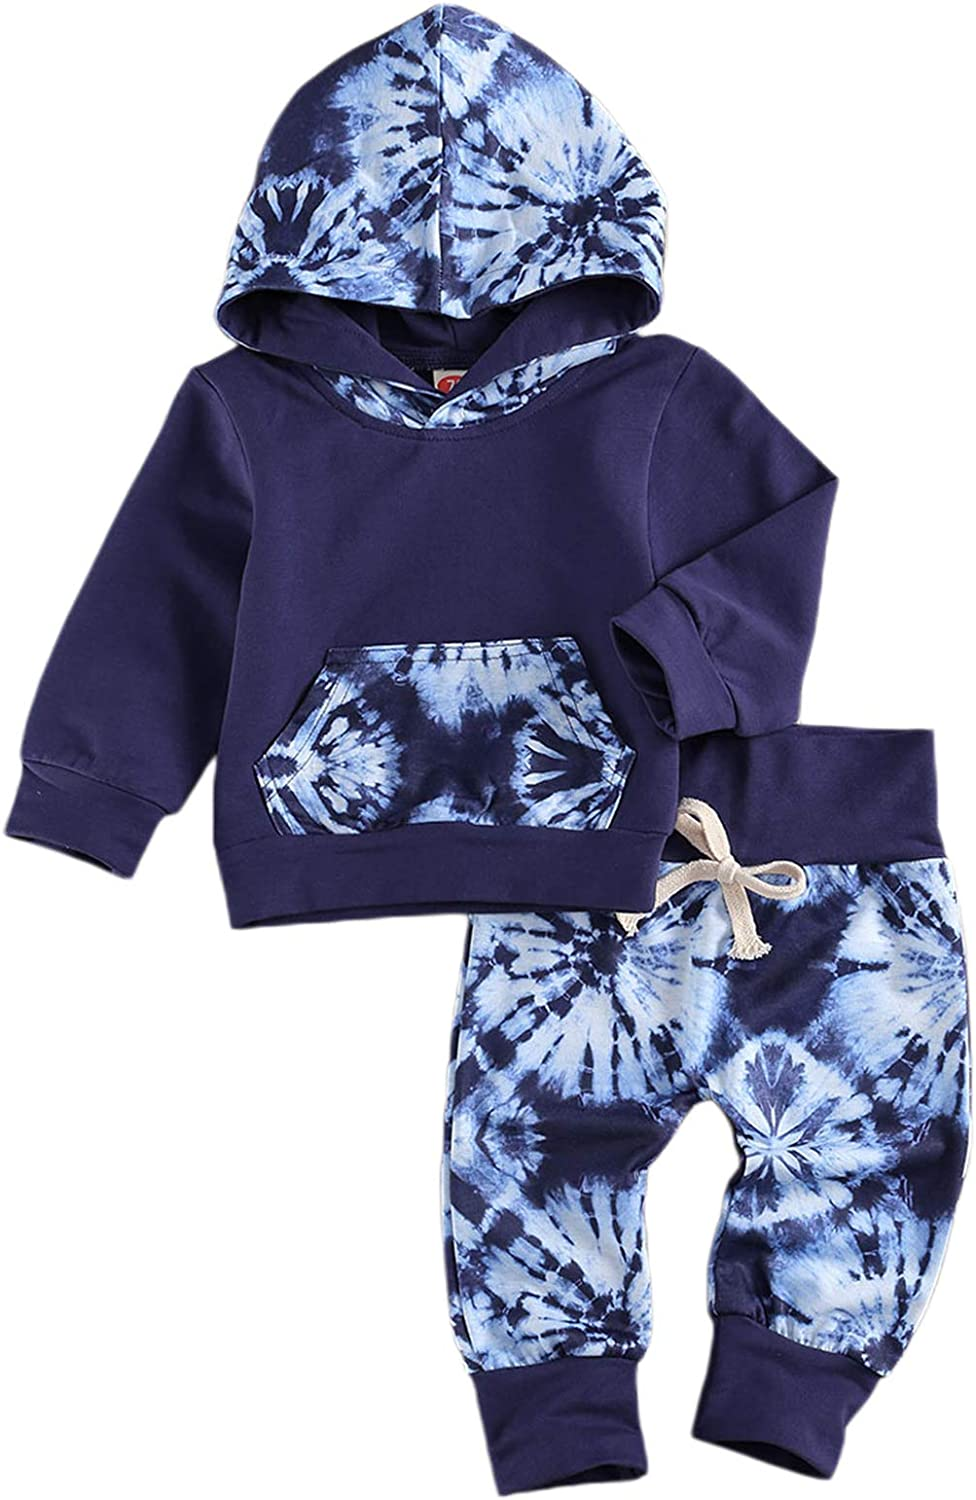 Baby Boy 's 2 Pieces Outfits Hooded Tie-dye Printed Sweater + Elastic Waist Trousers Outfits Set